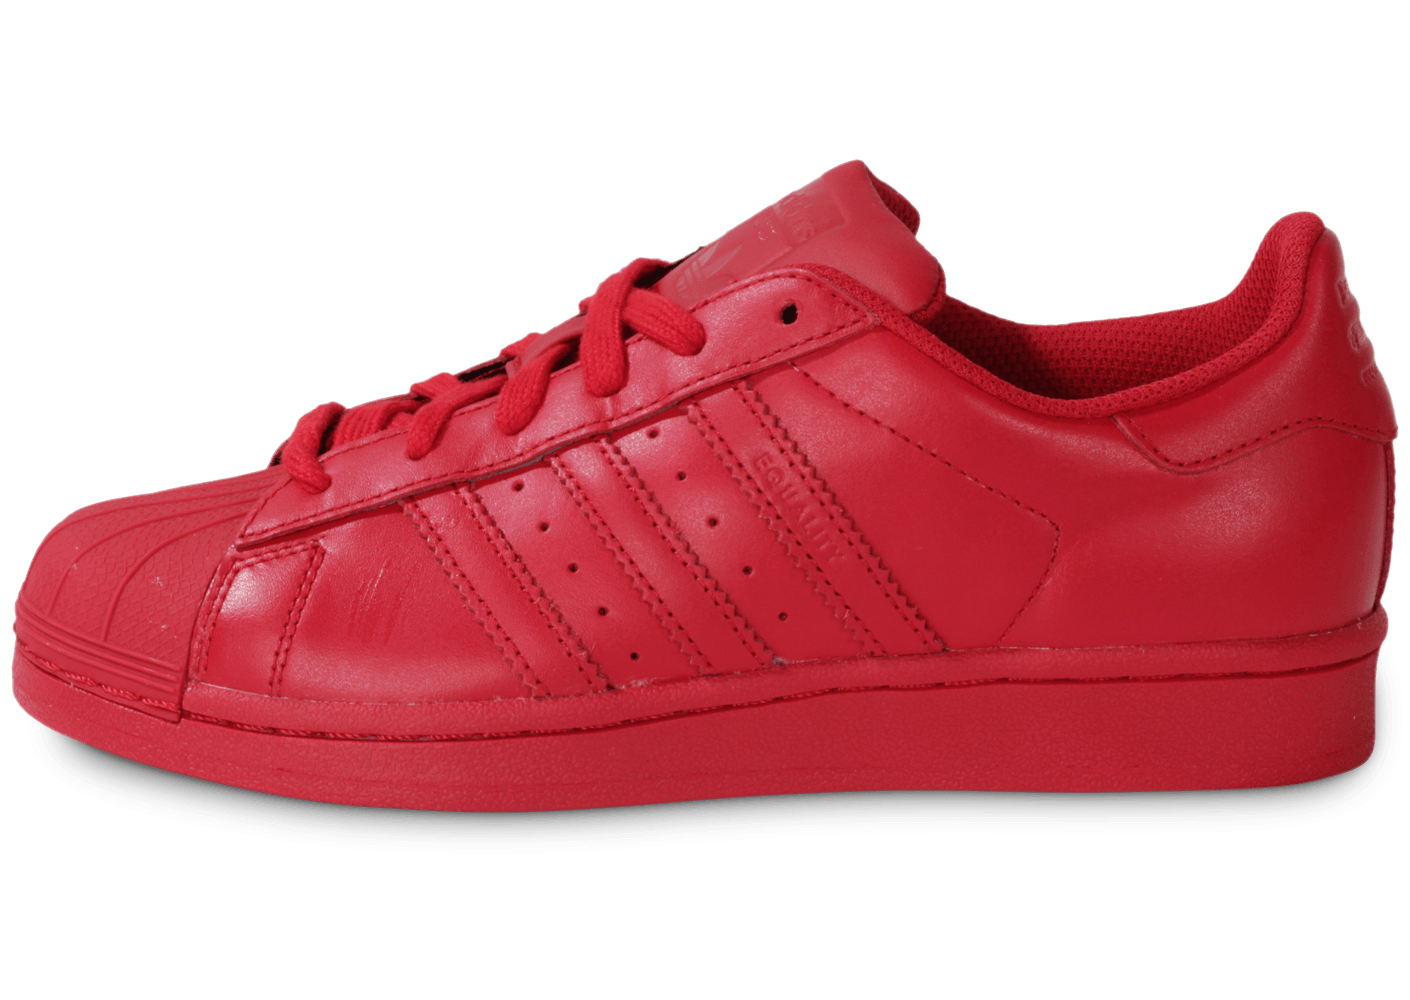 adidas stan smith made in spain,adidas gazelle og beige,adidas superstar supercolor rouge